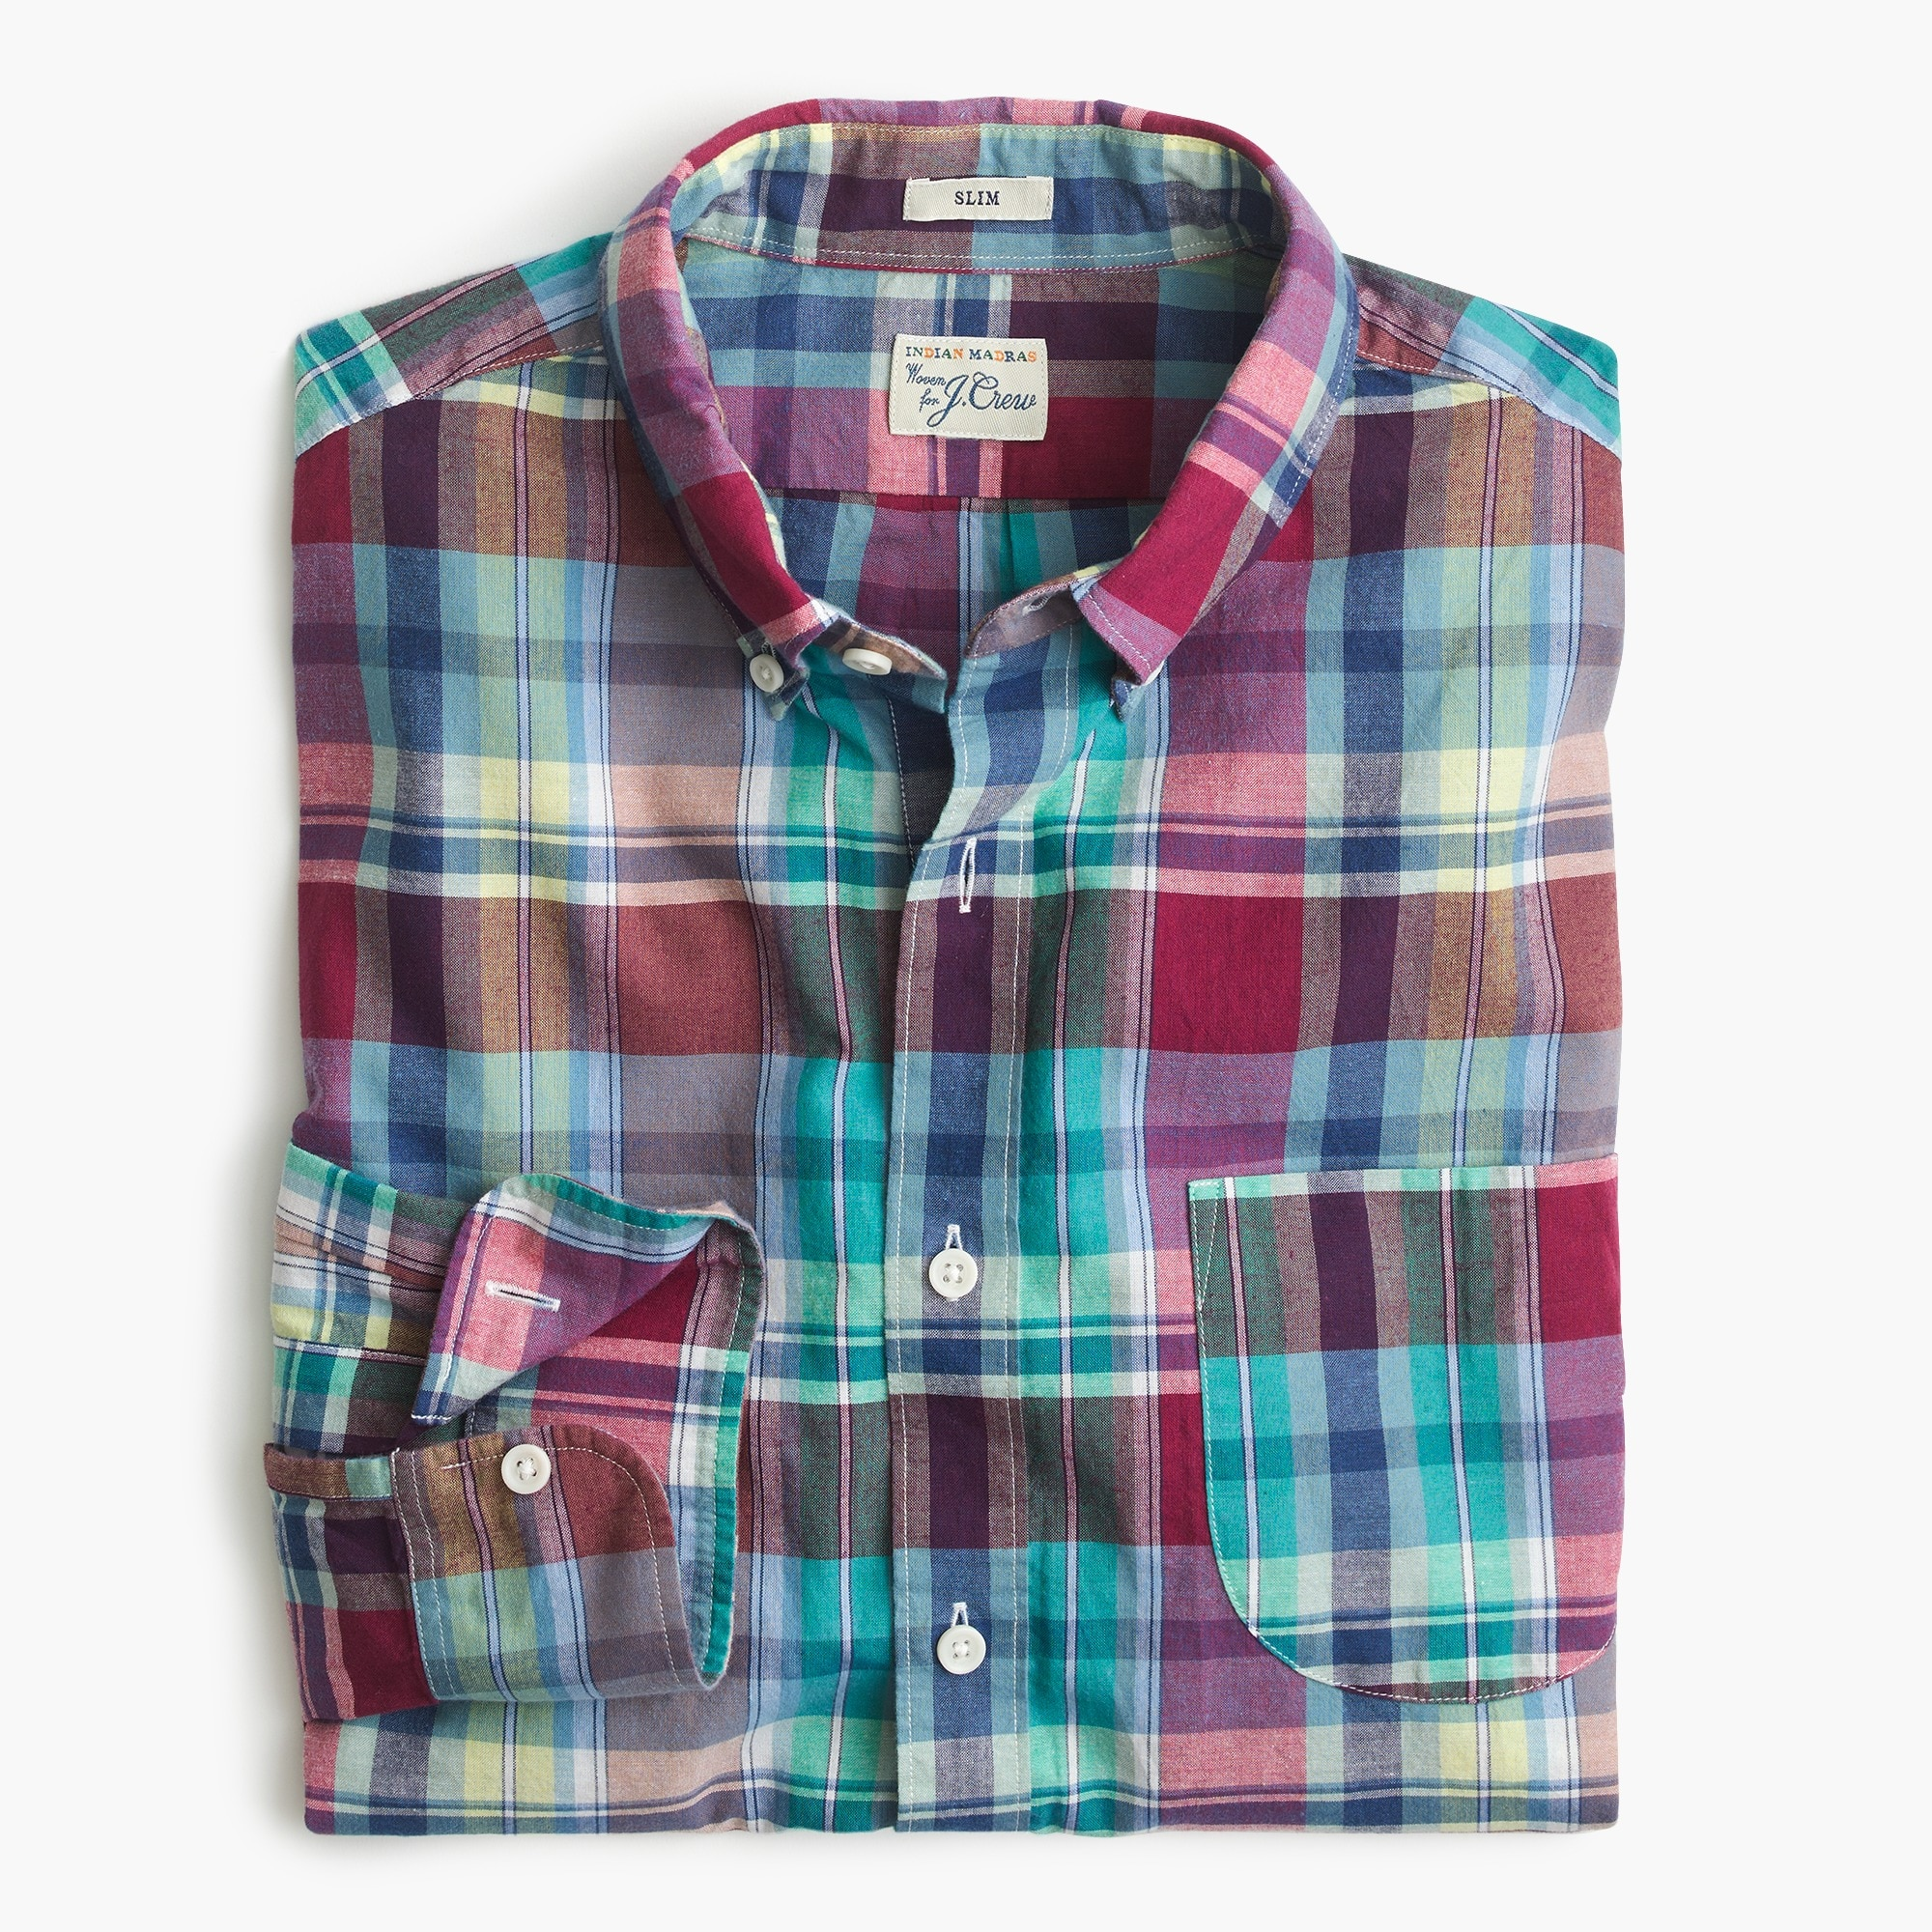 Slim Indian madras shirt in red and teal plaid